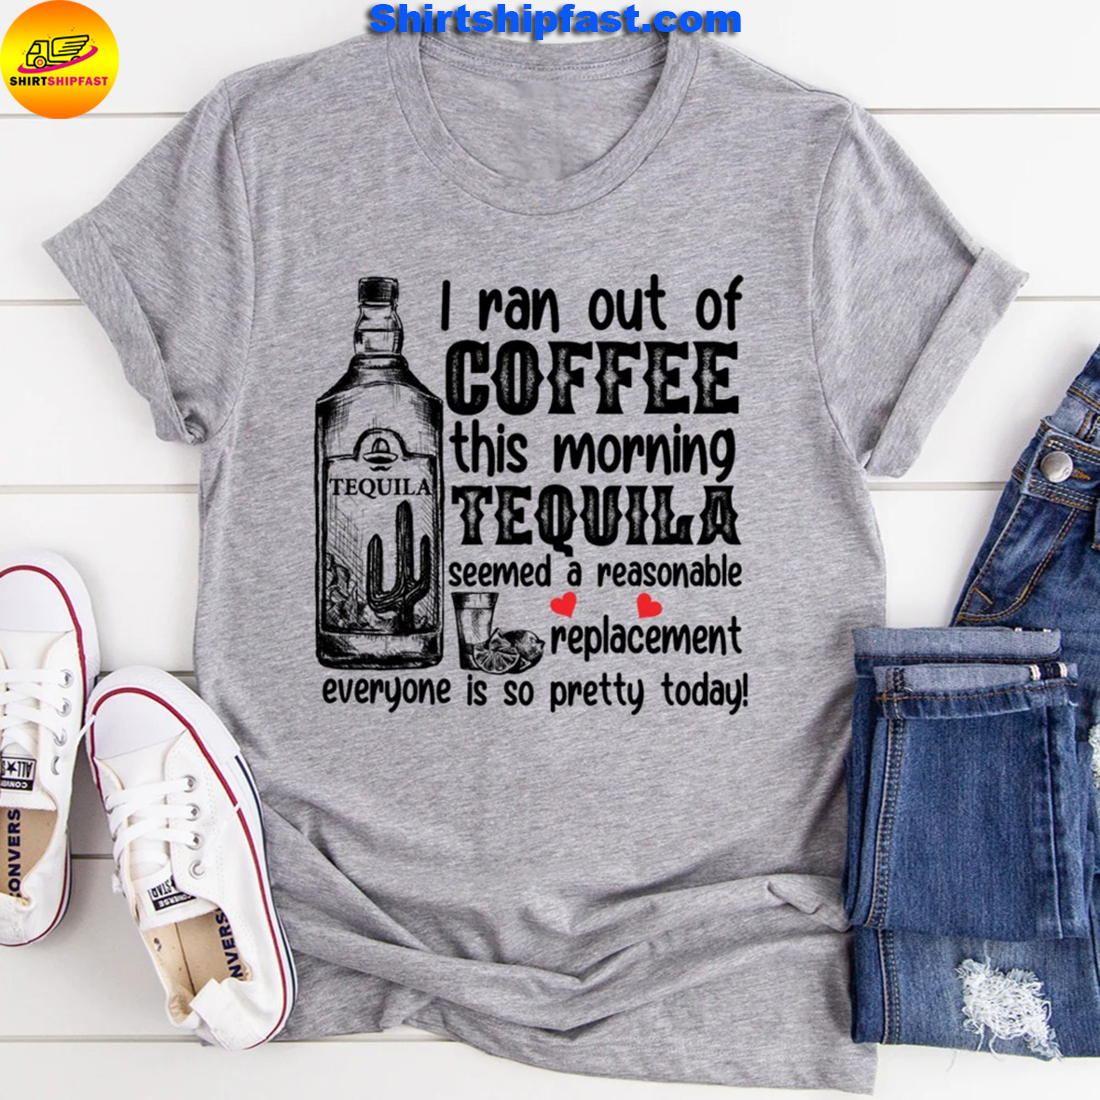 I ran out of coffee this morning tequila seemed a reasonable replacement everyone is so pretty today - Grey